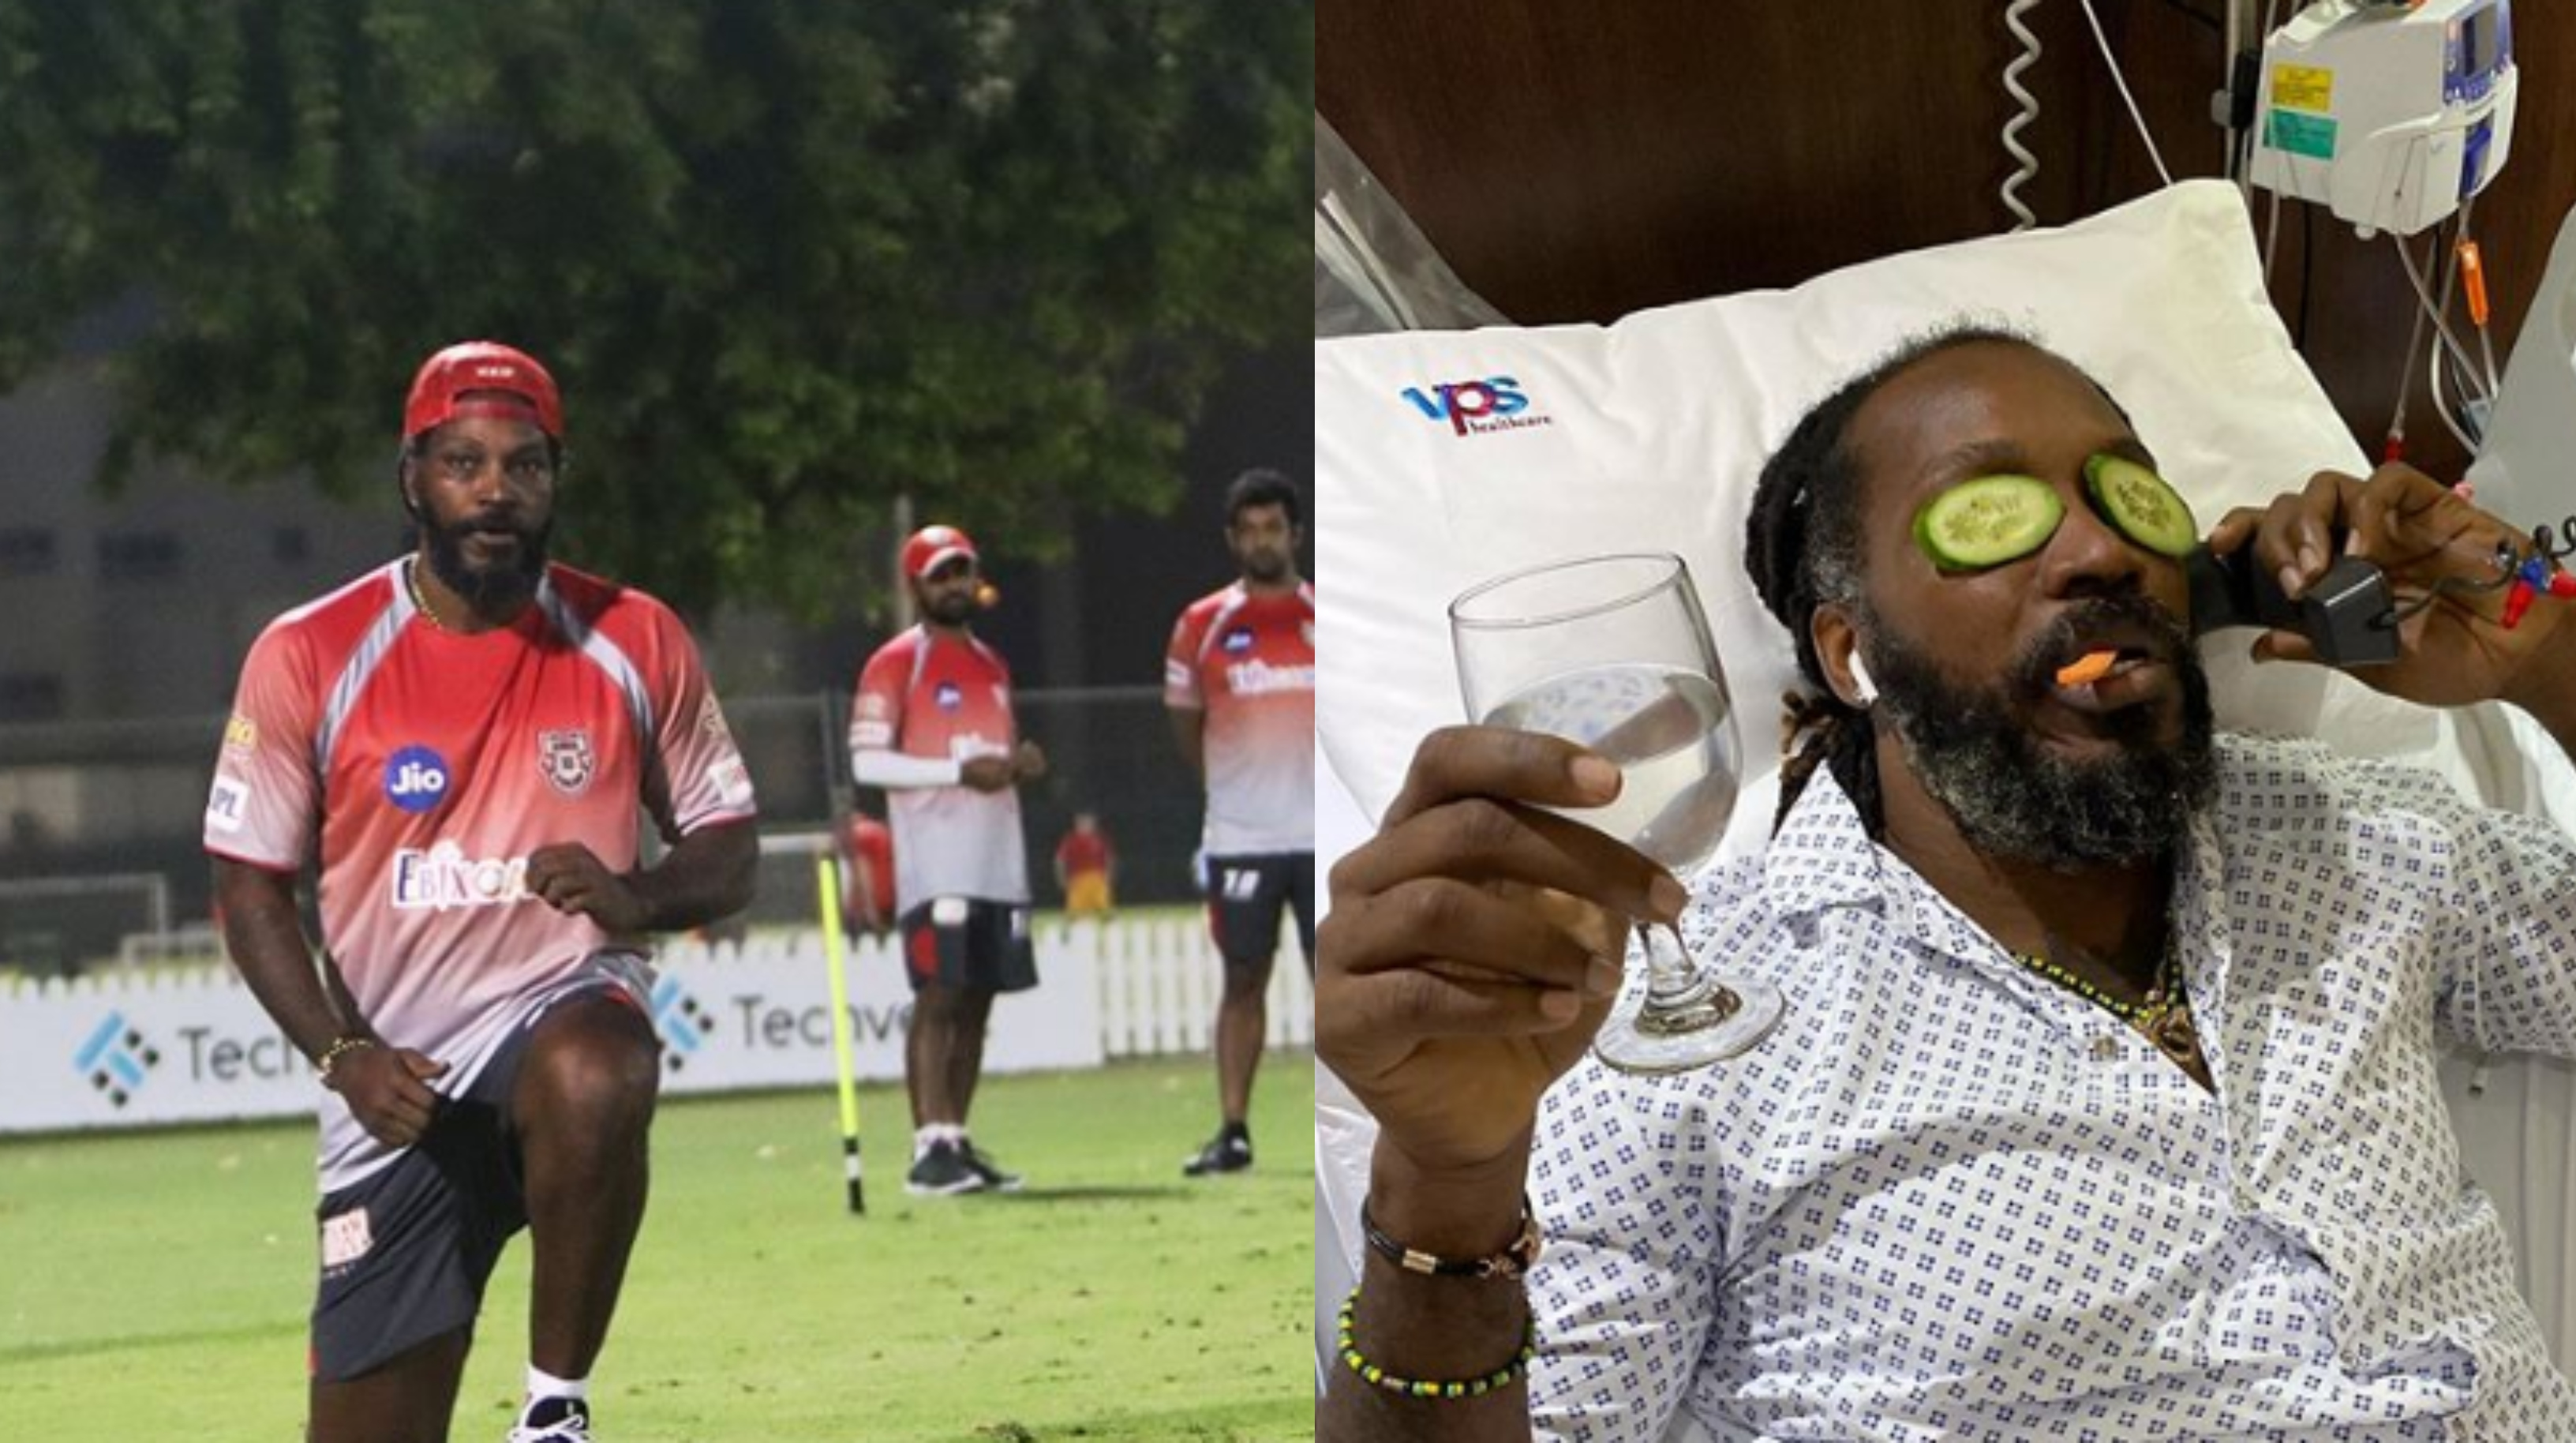 Chris Gayle returned to training after recovering from food poisoning | Instagram